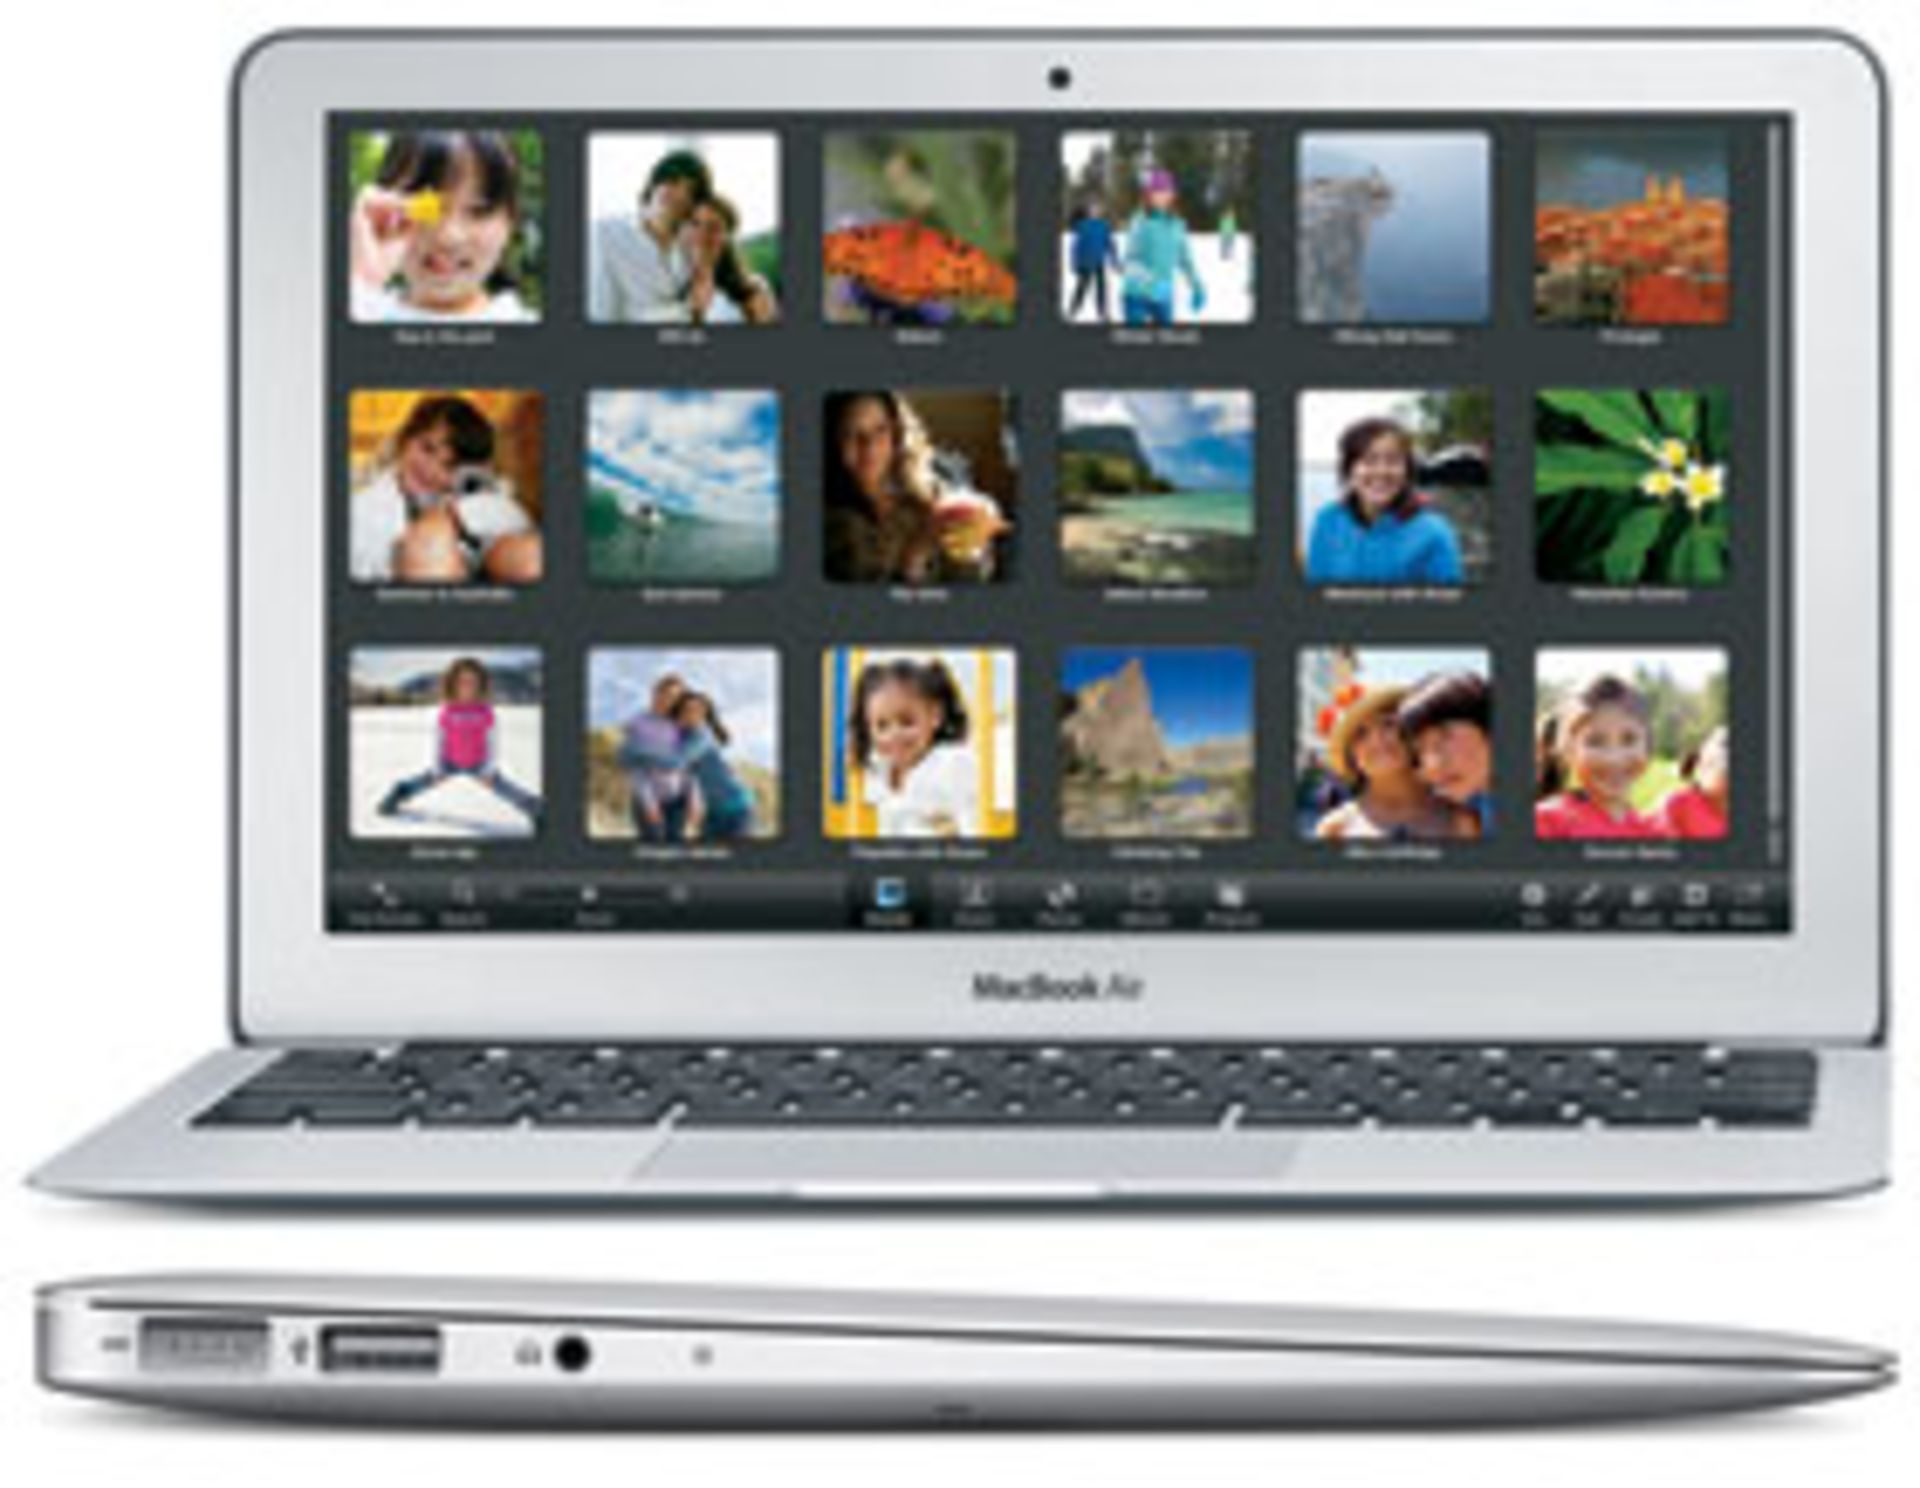 Lot 60008 - V Grade B Macbook Air 11.6 Inch Core 2 Duo - 64GB SSD - A1370 - Available Approx 7 Working Days